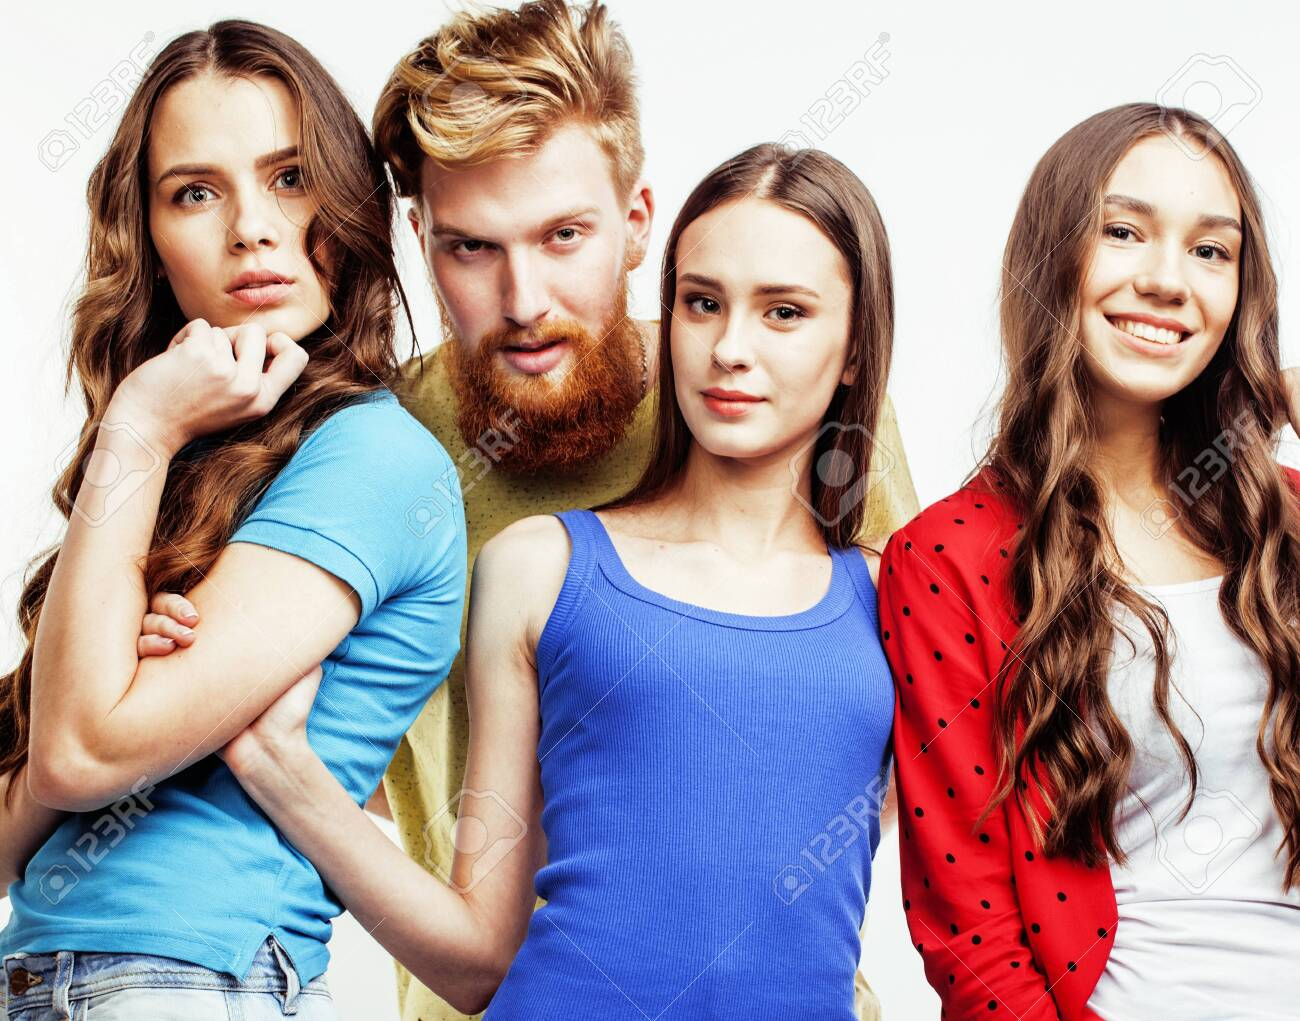 company of hipster guys, bearded red hair boy and girls students having fun together friends, diverse fashion style, lifestyle people concept isolated on white background - 148479563